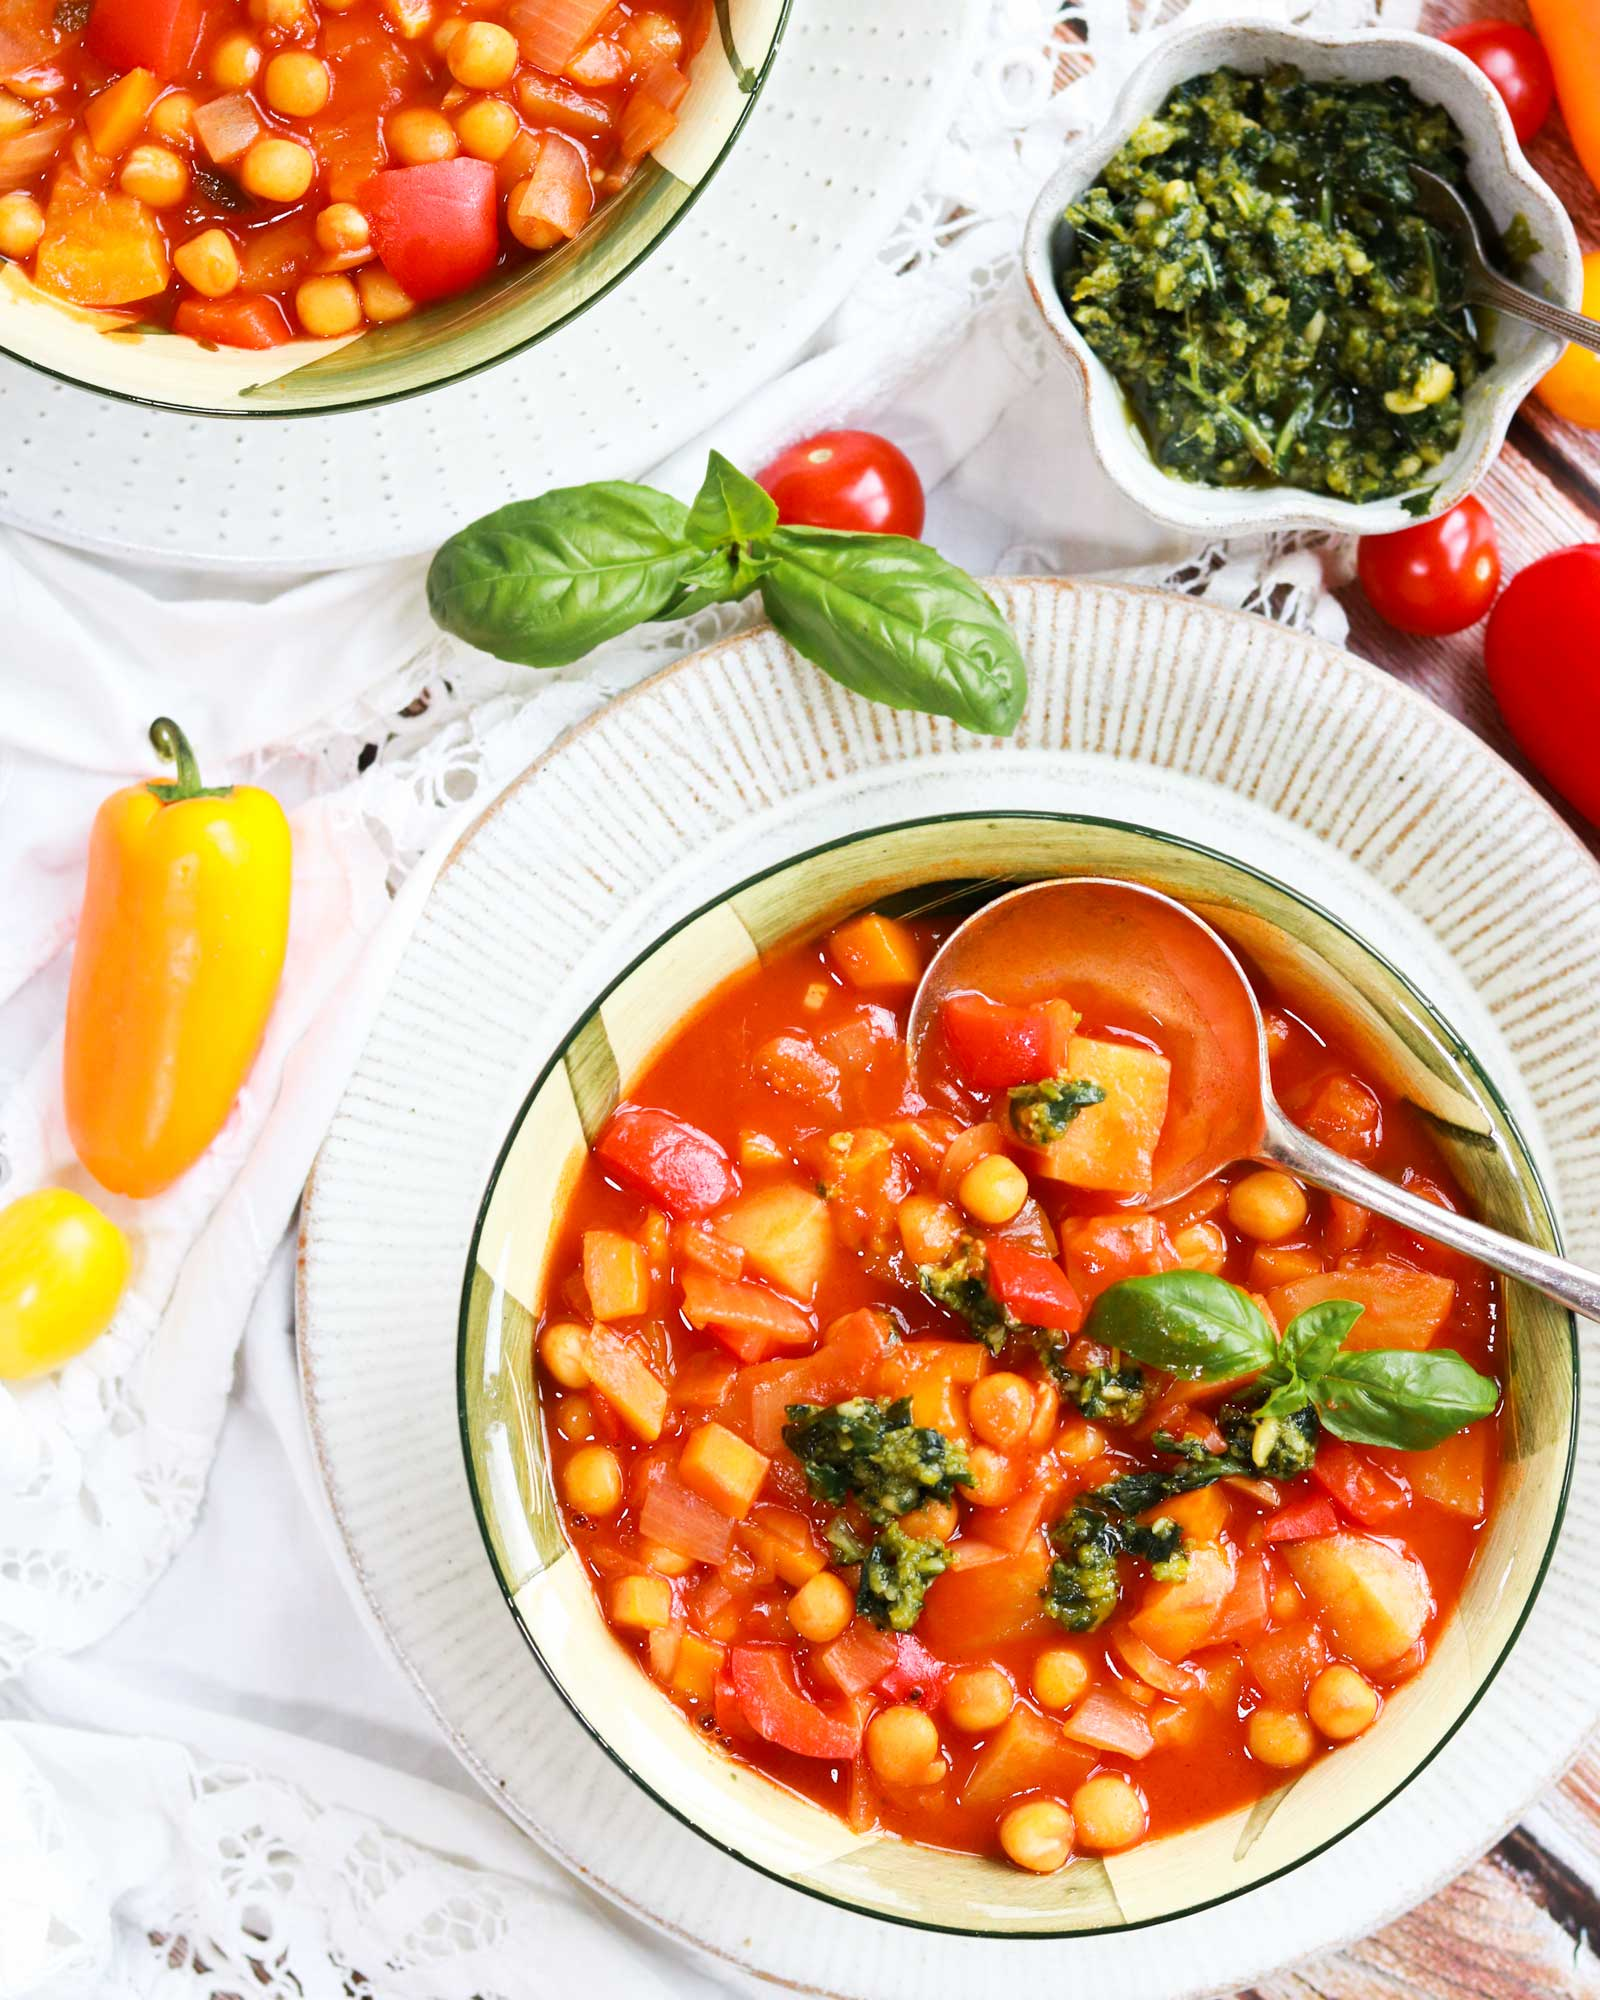 Chickpea Summer Stew with pesto